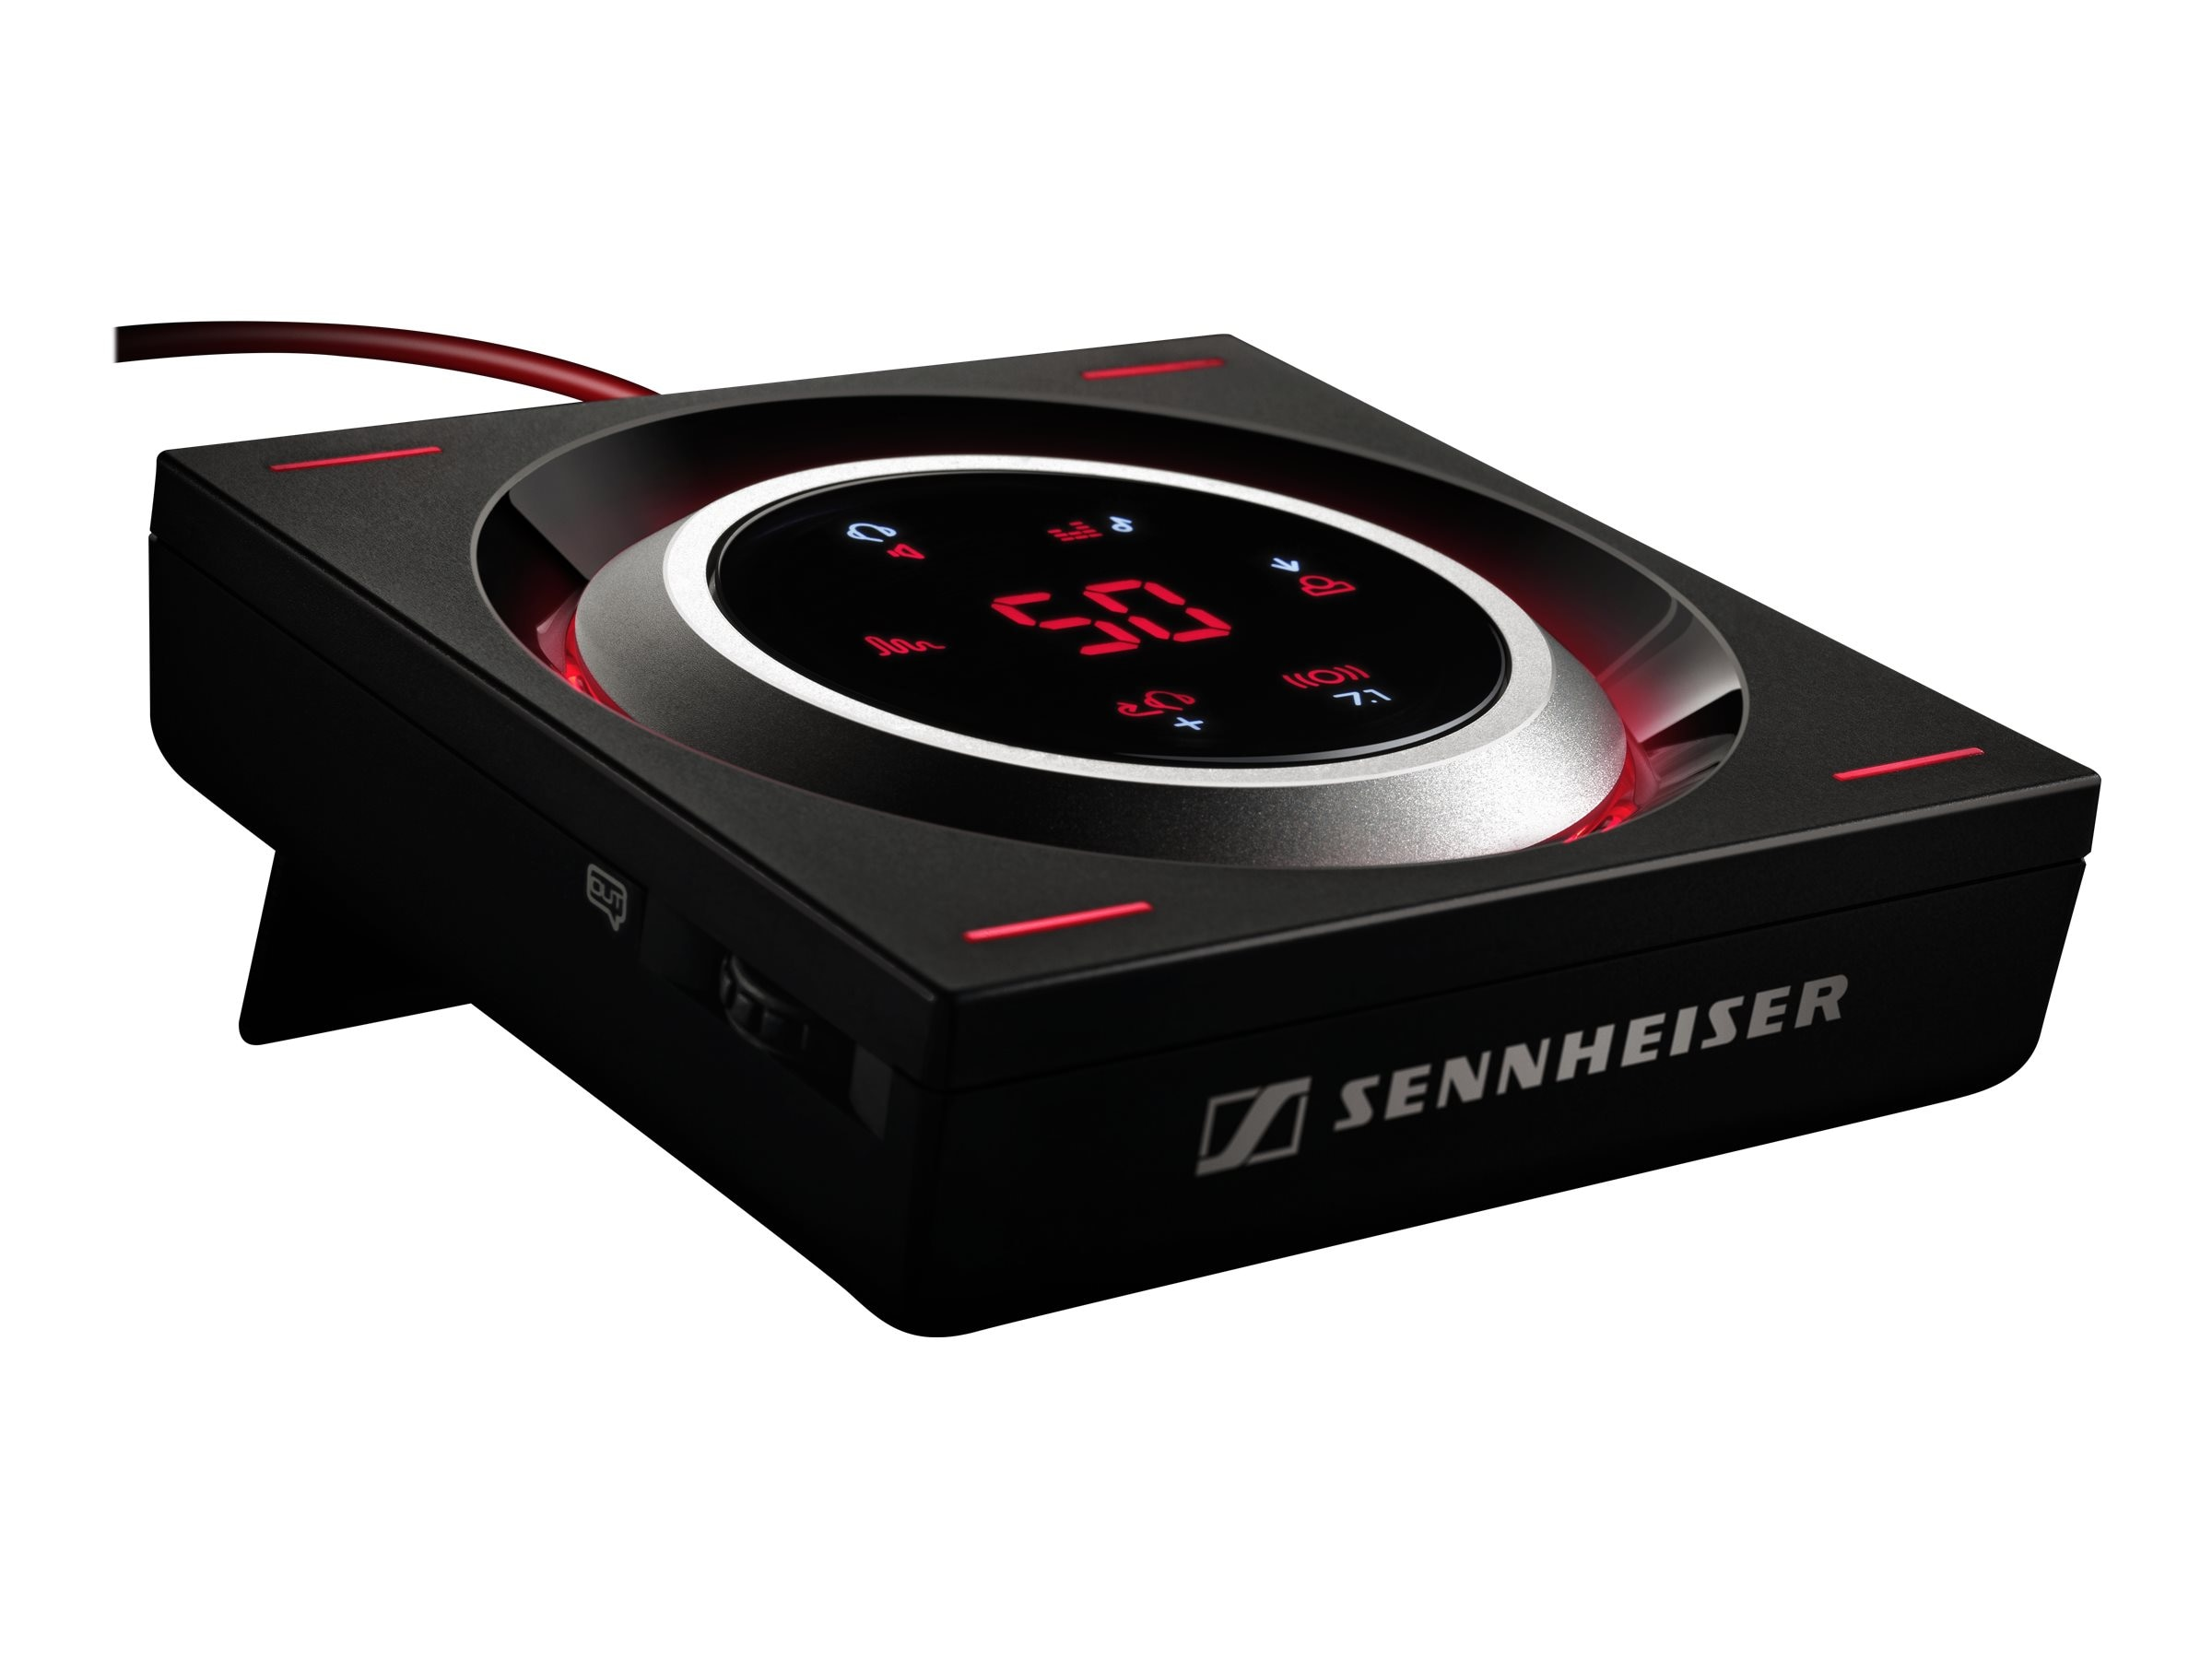 Sennheiser Gaming Audio Amplifier, 506527